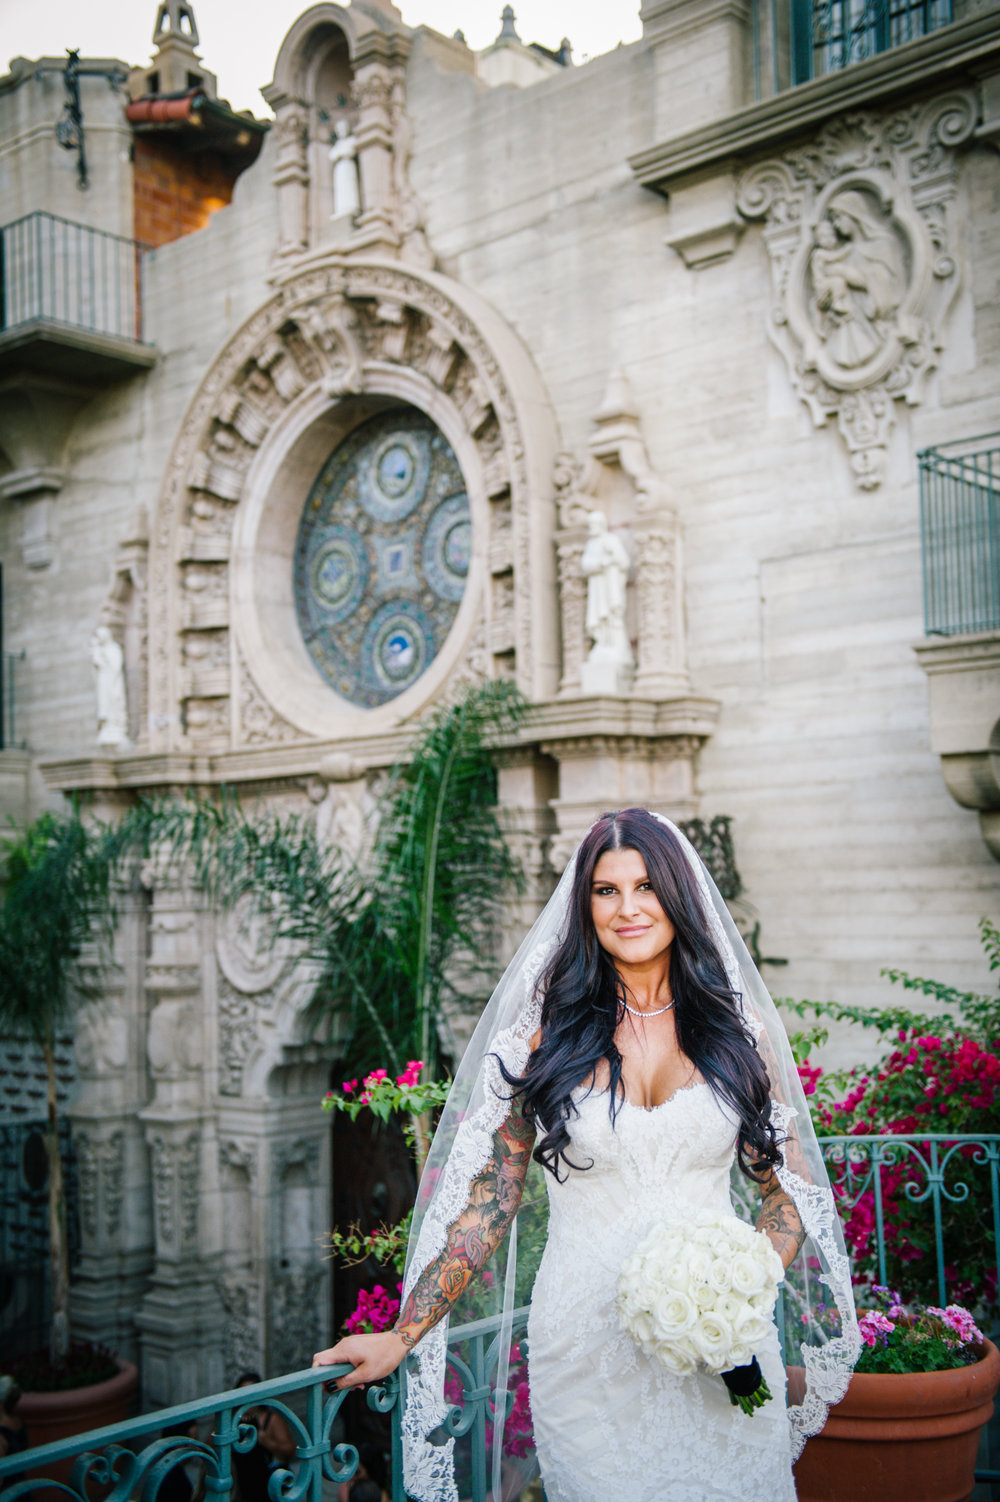 Riverside-Mission-Inn-Wedding-0158.JPG